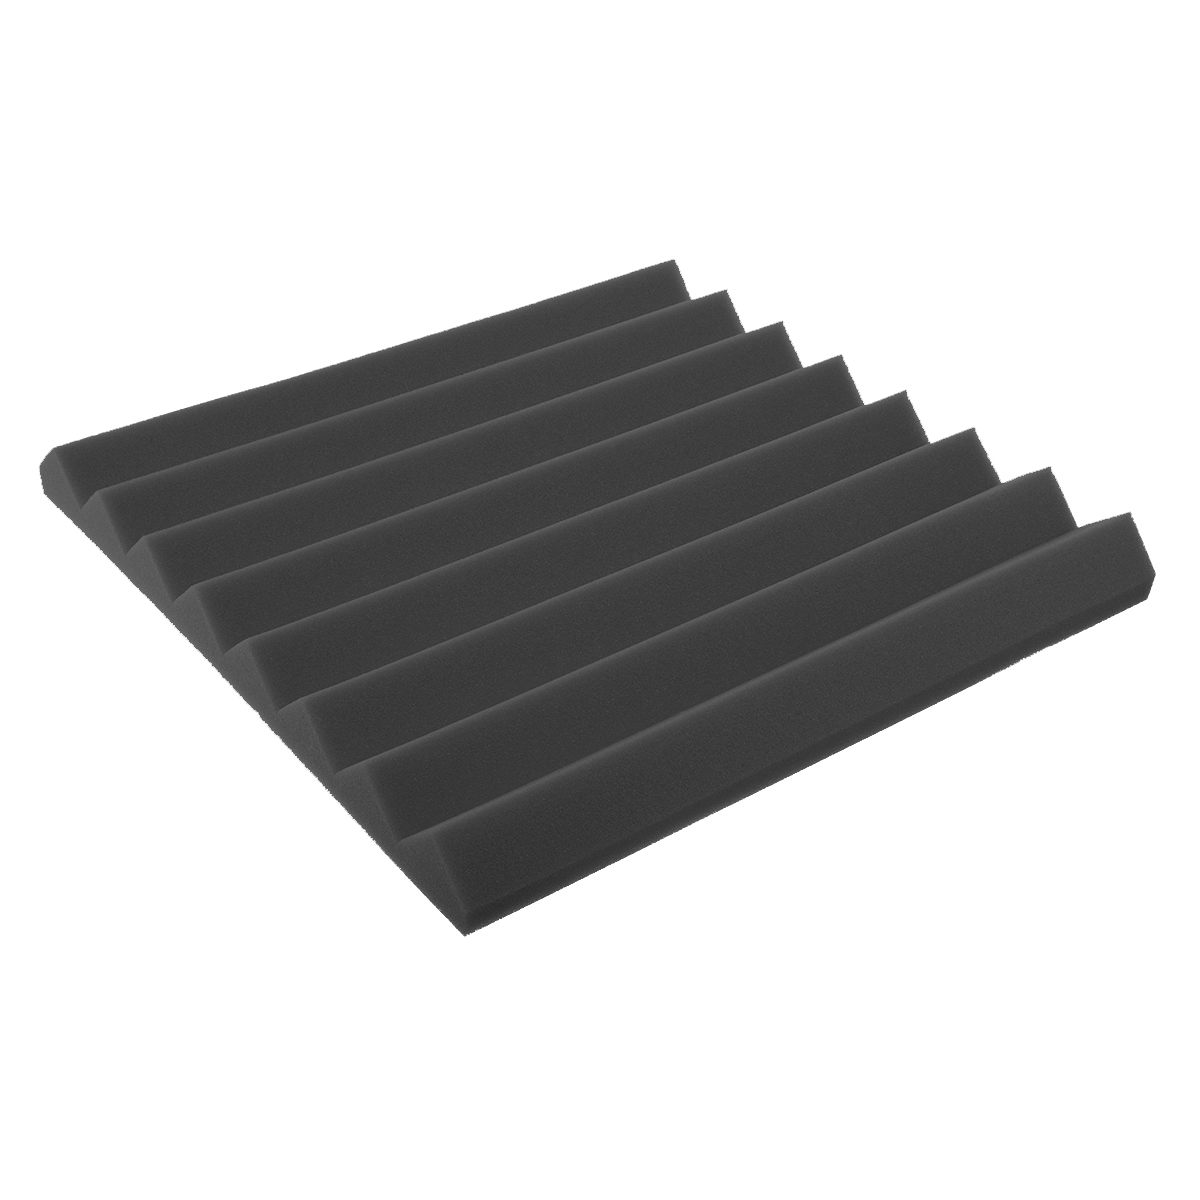 6Pcs 50 0x 500 Acoustic Soundproof Sound Stop Absorption Soundproofing Foam For KTV Audio Room Studio Room